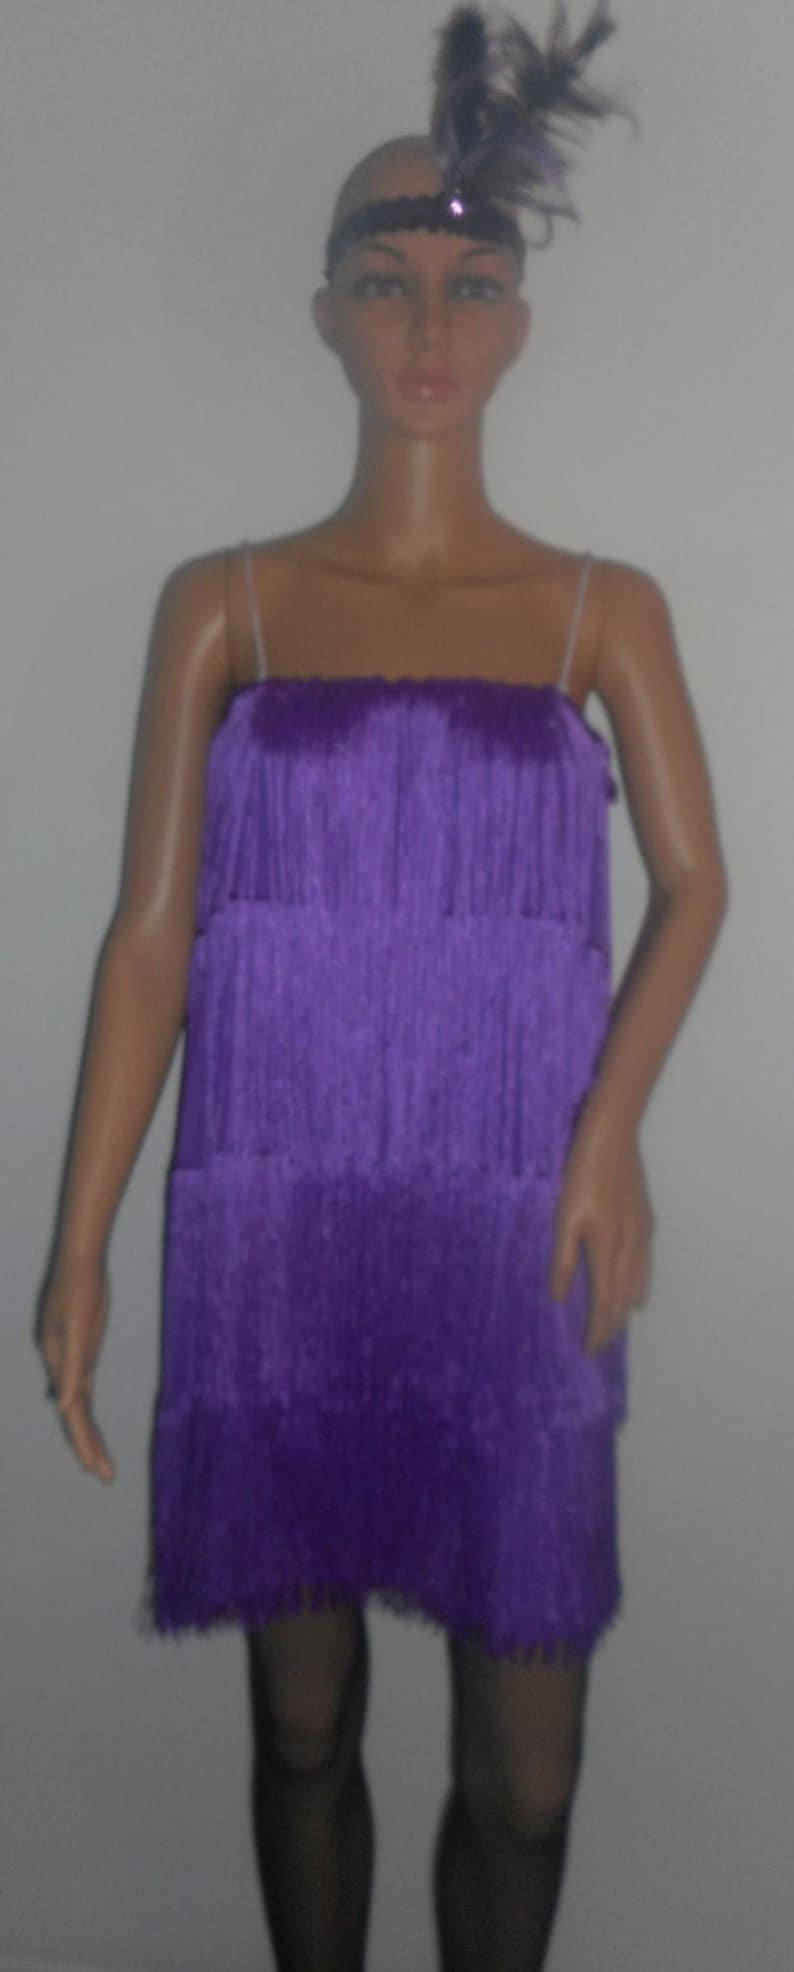 adult plus size 1x and 2x size 20 stretch fabric purple1920/'s theme party event fringed flapper costume dress costumes